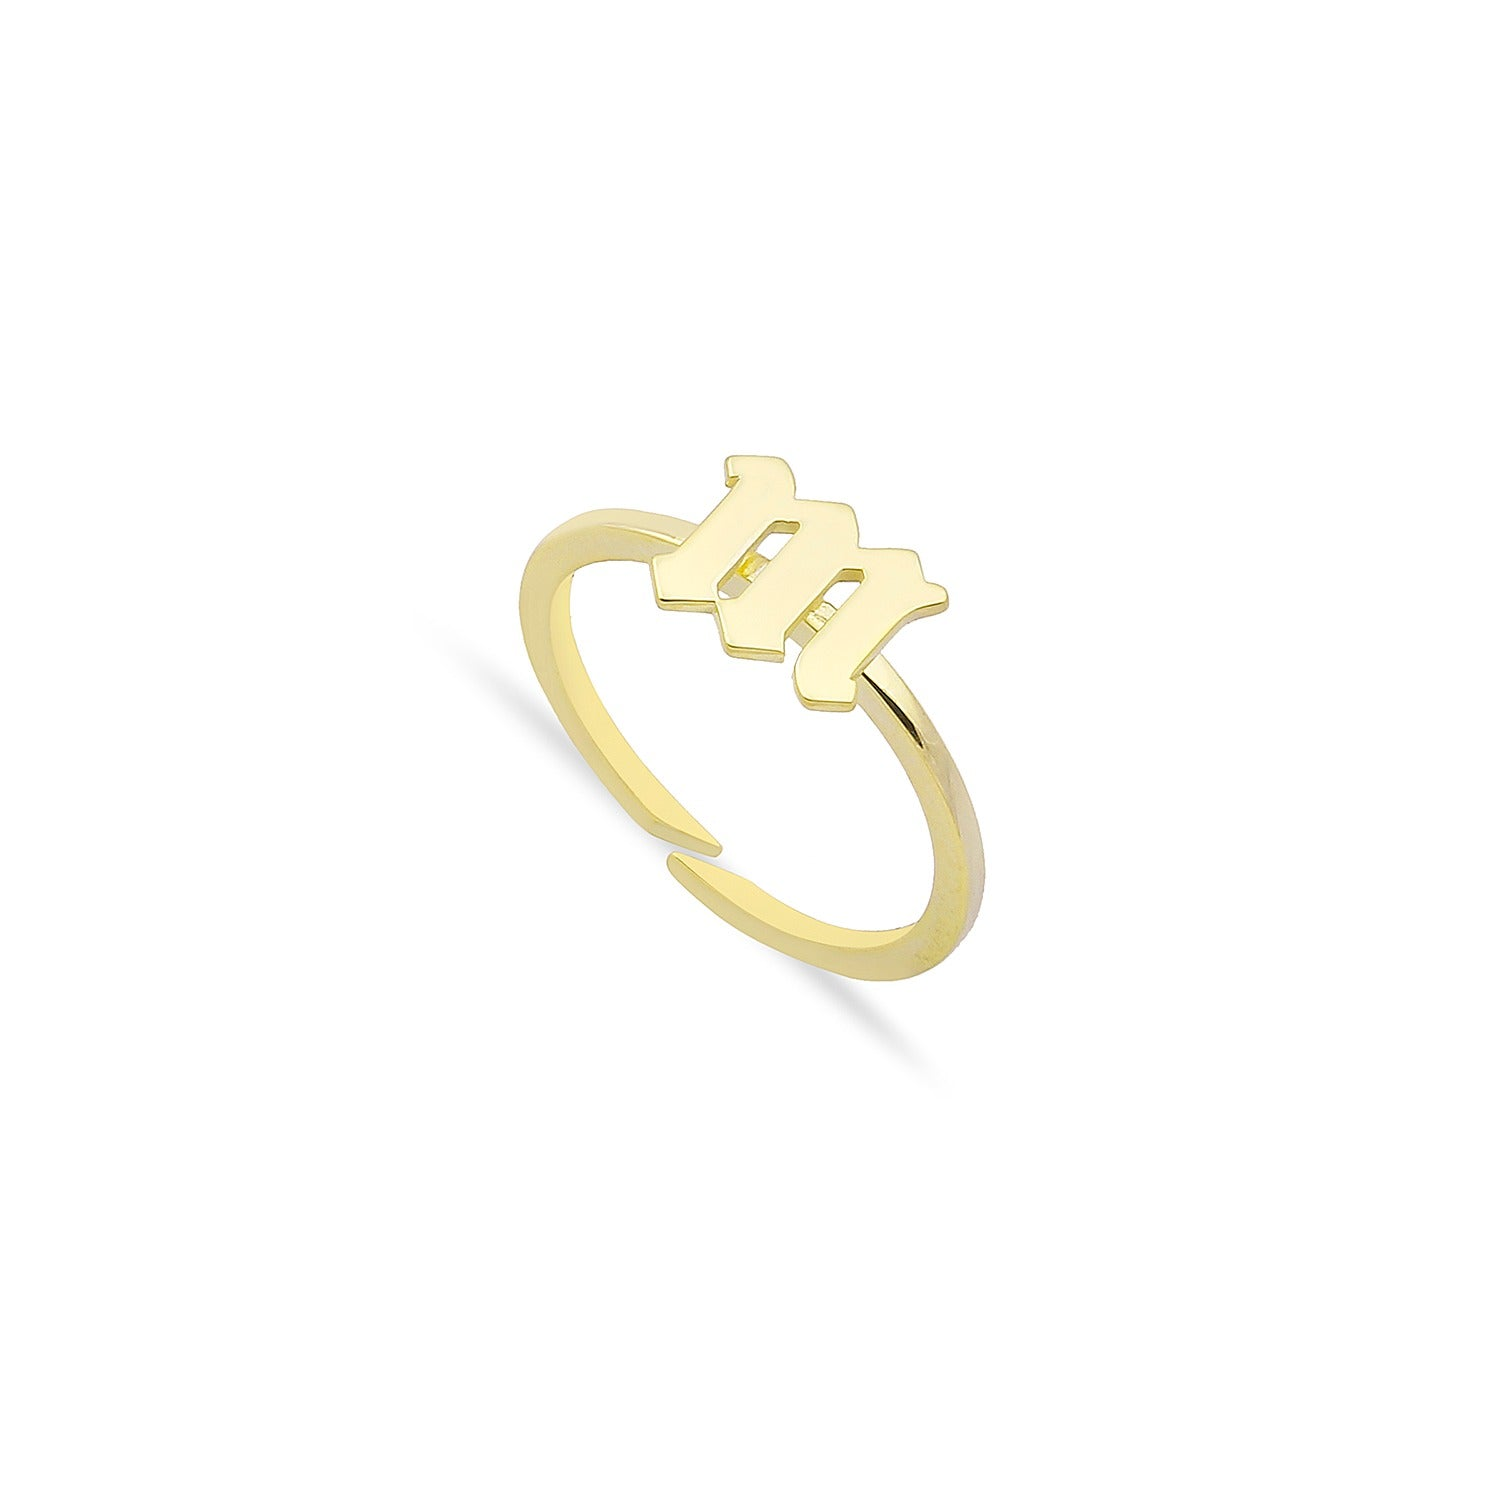 Adjustable Gothic Initial Ring